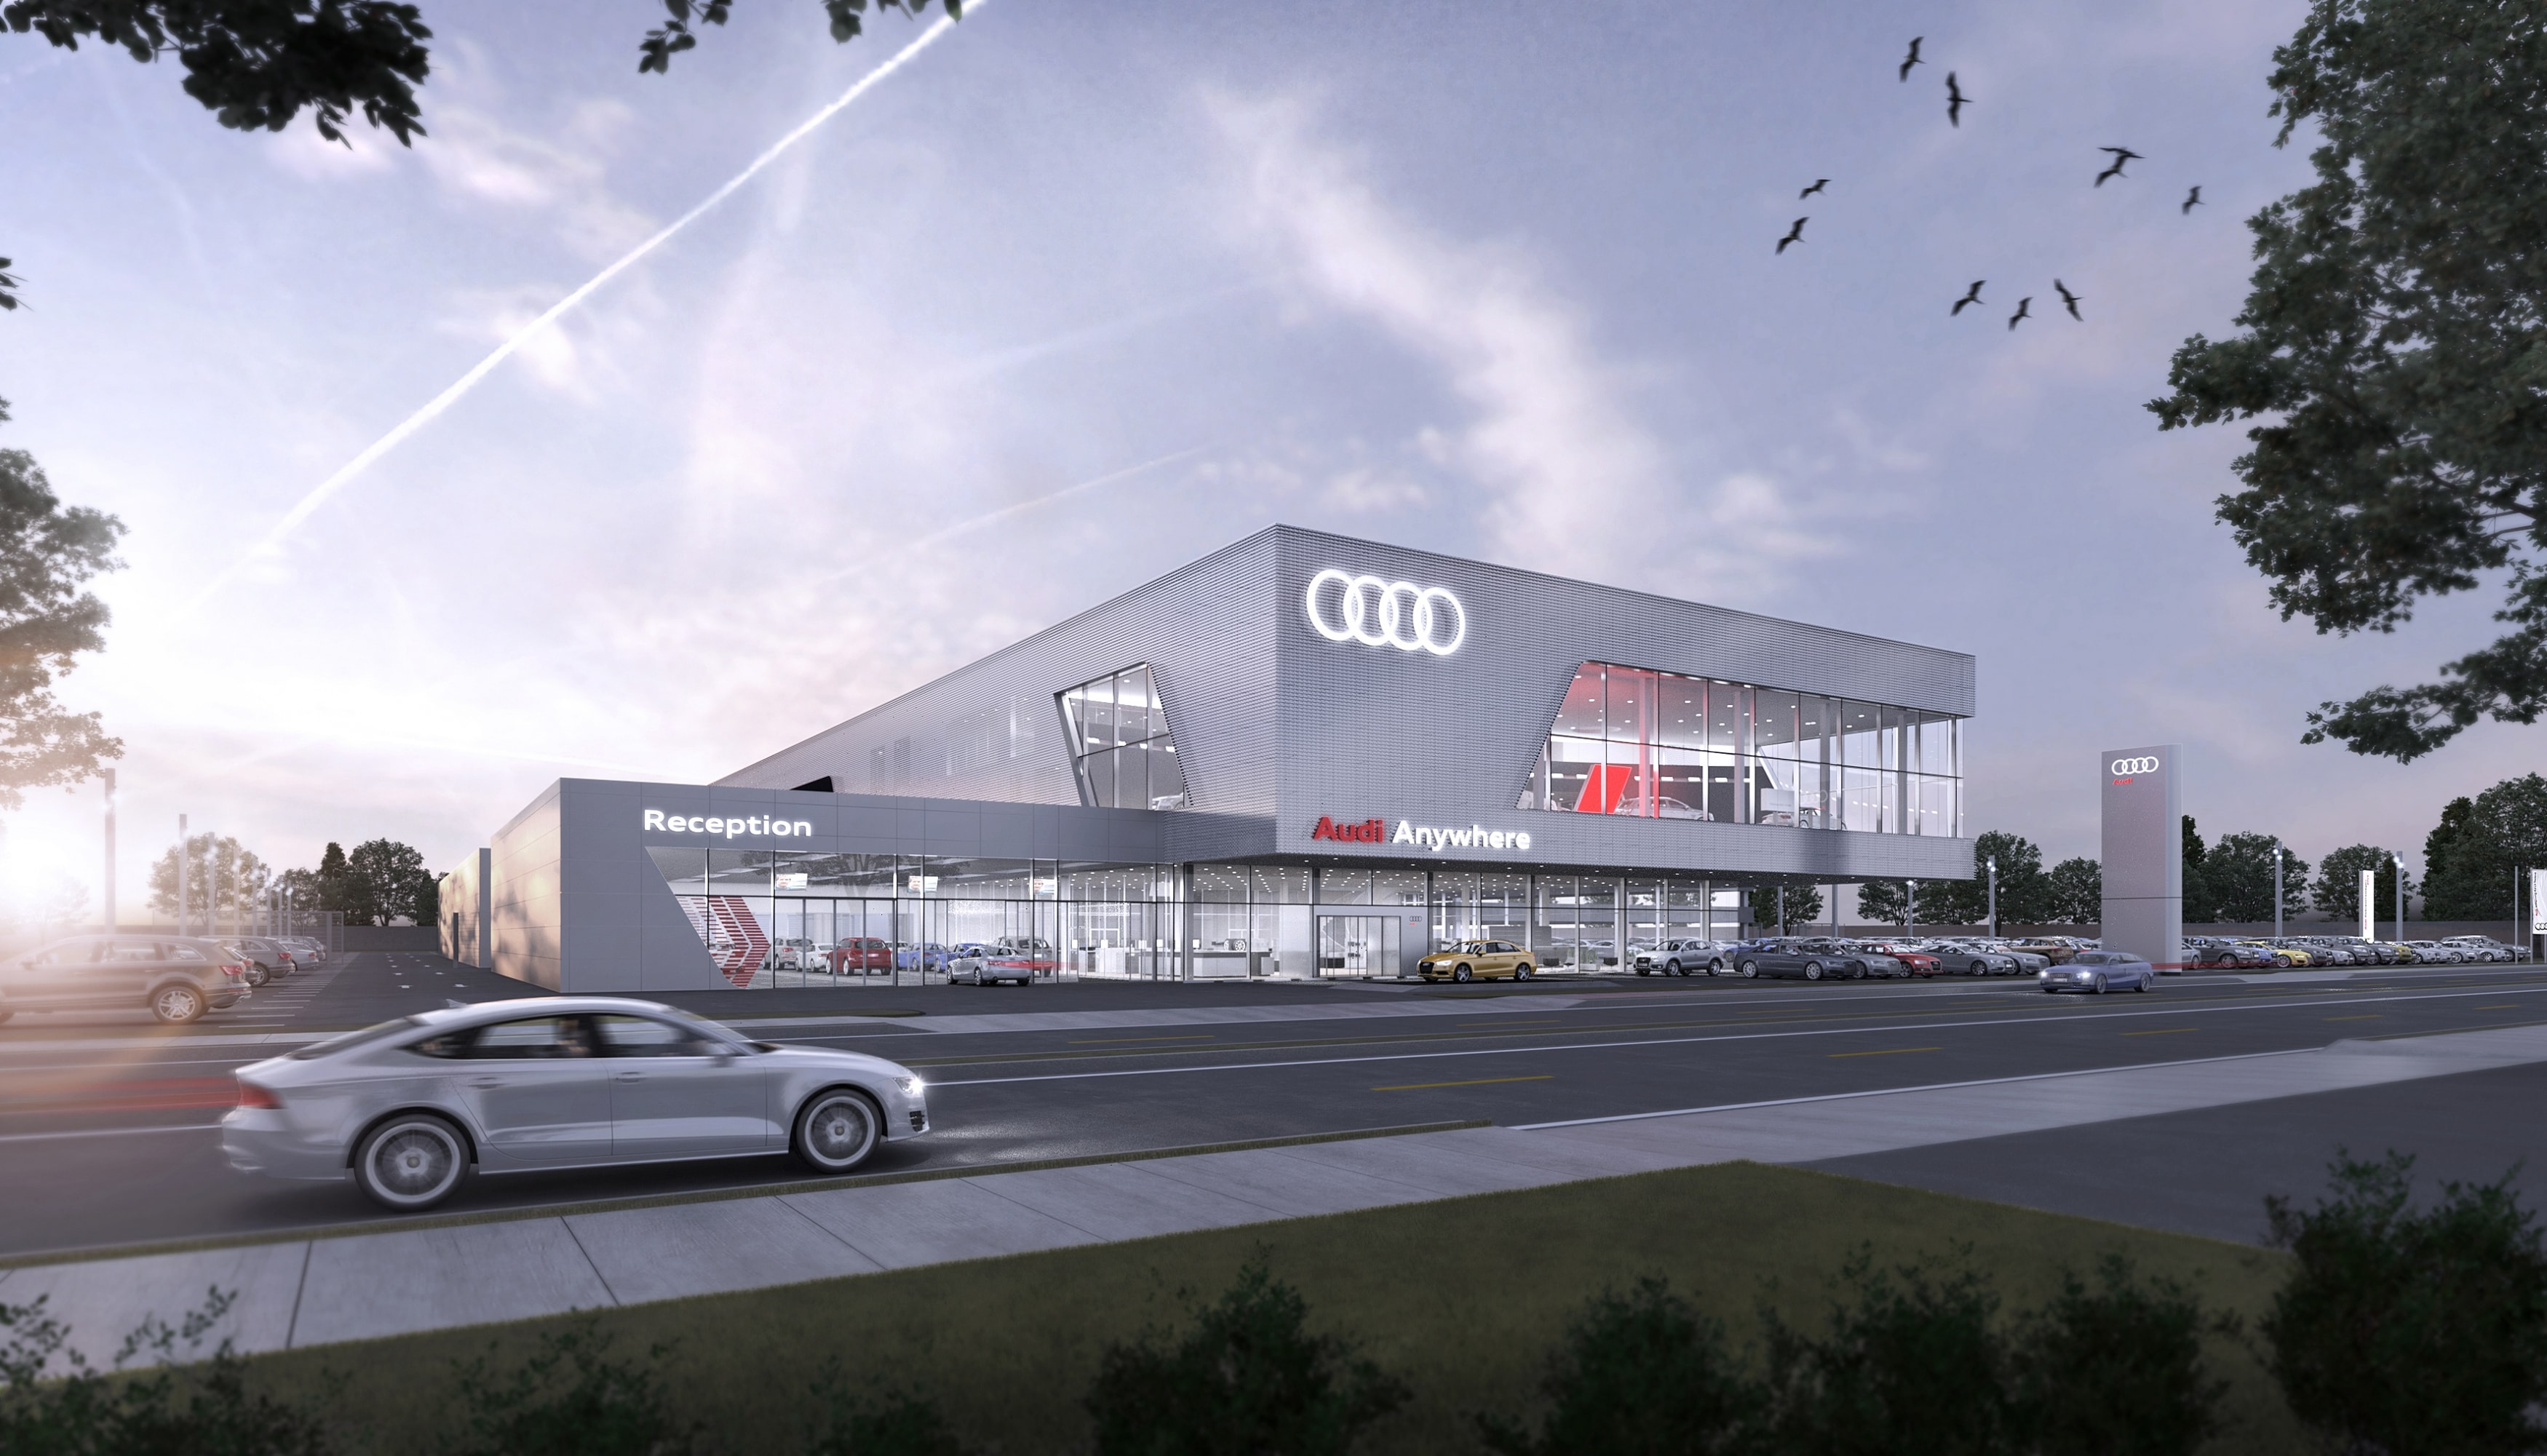 t other lease swedespeed archive audi minutes each of index drove new nj within